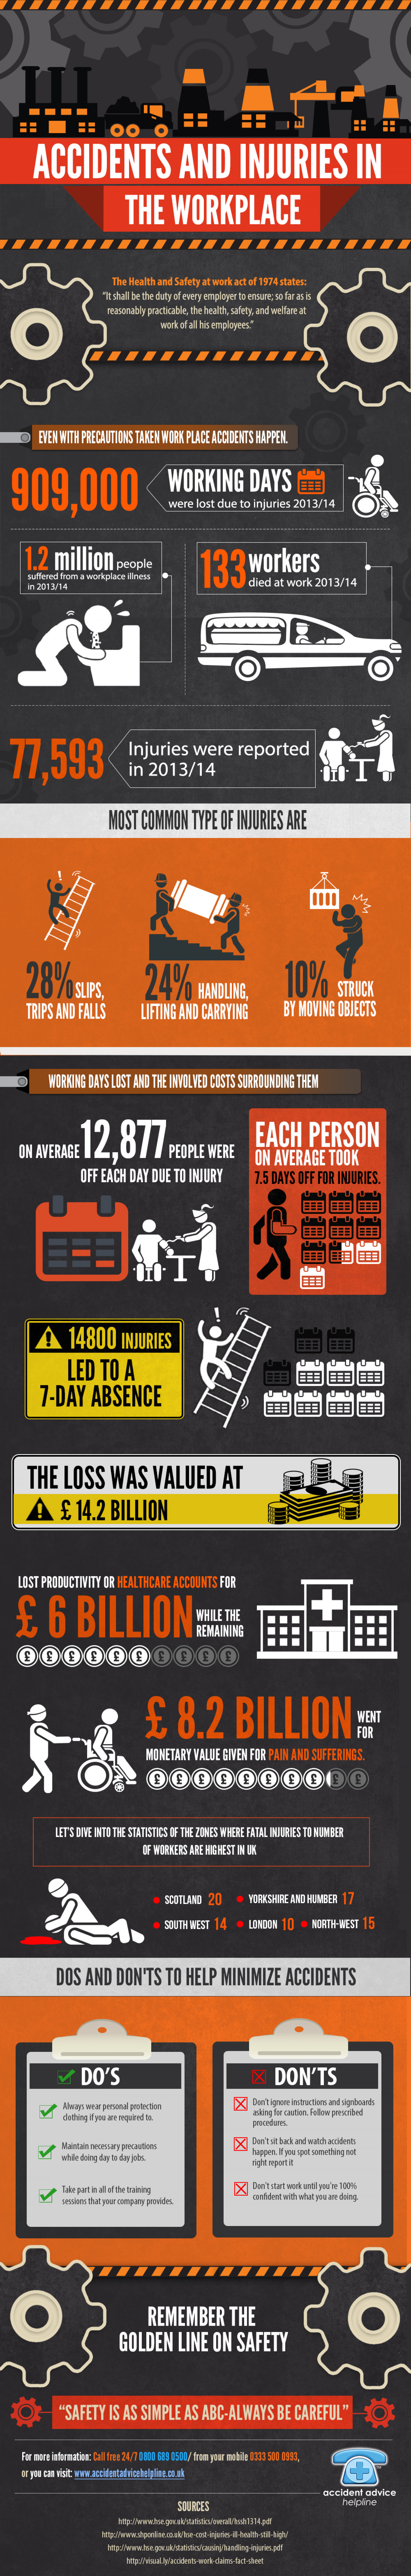 Accidents and Injuries in the Workplace Infographic